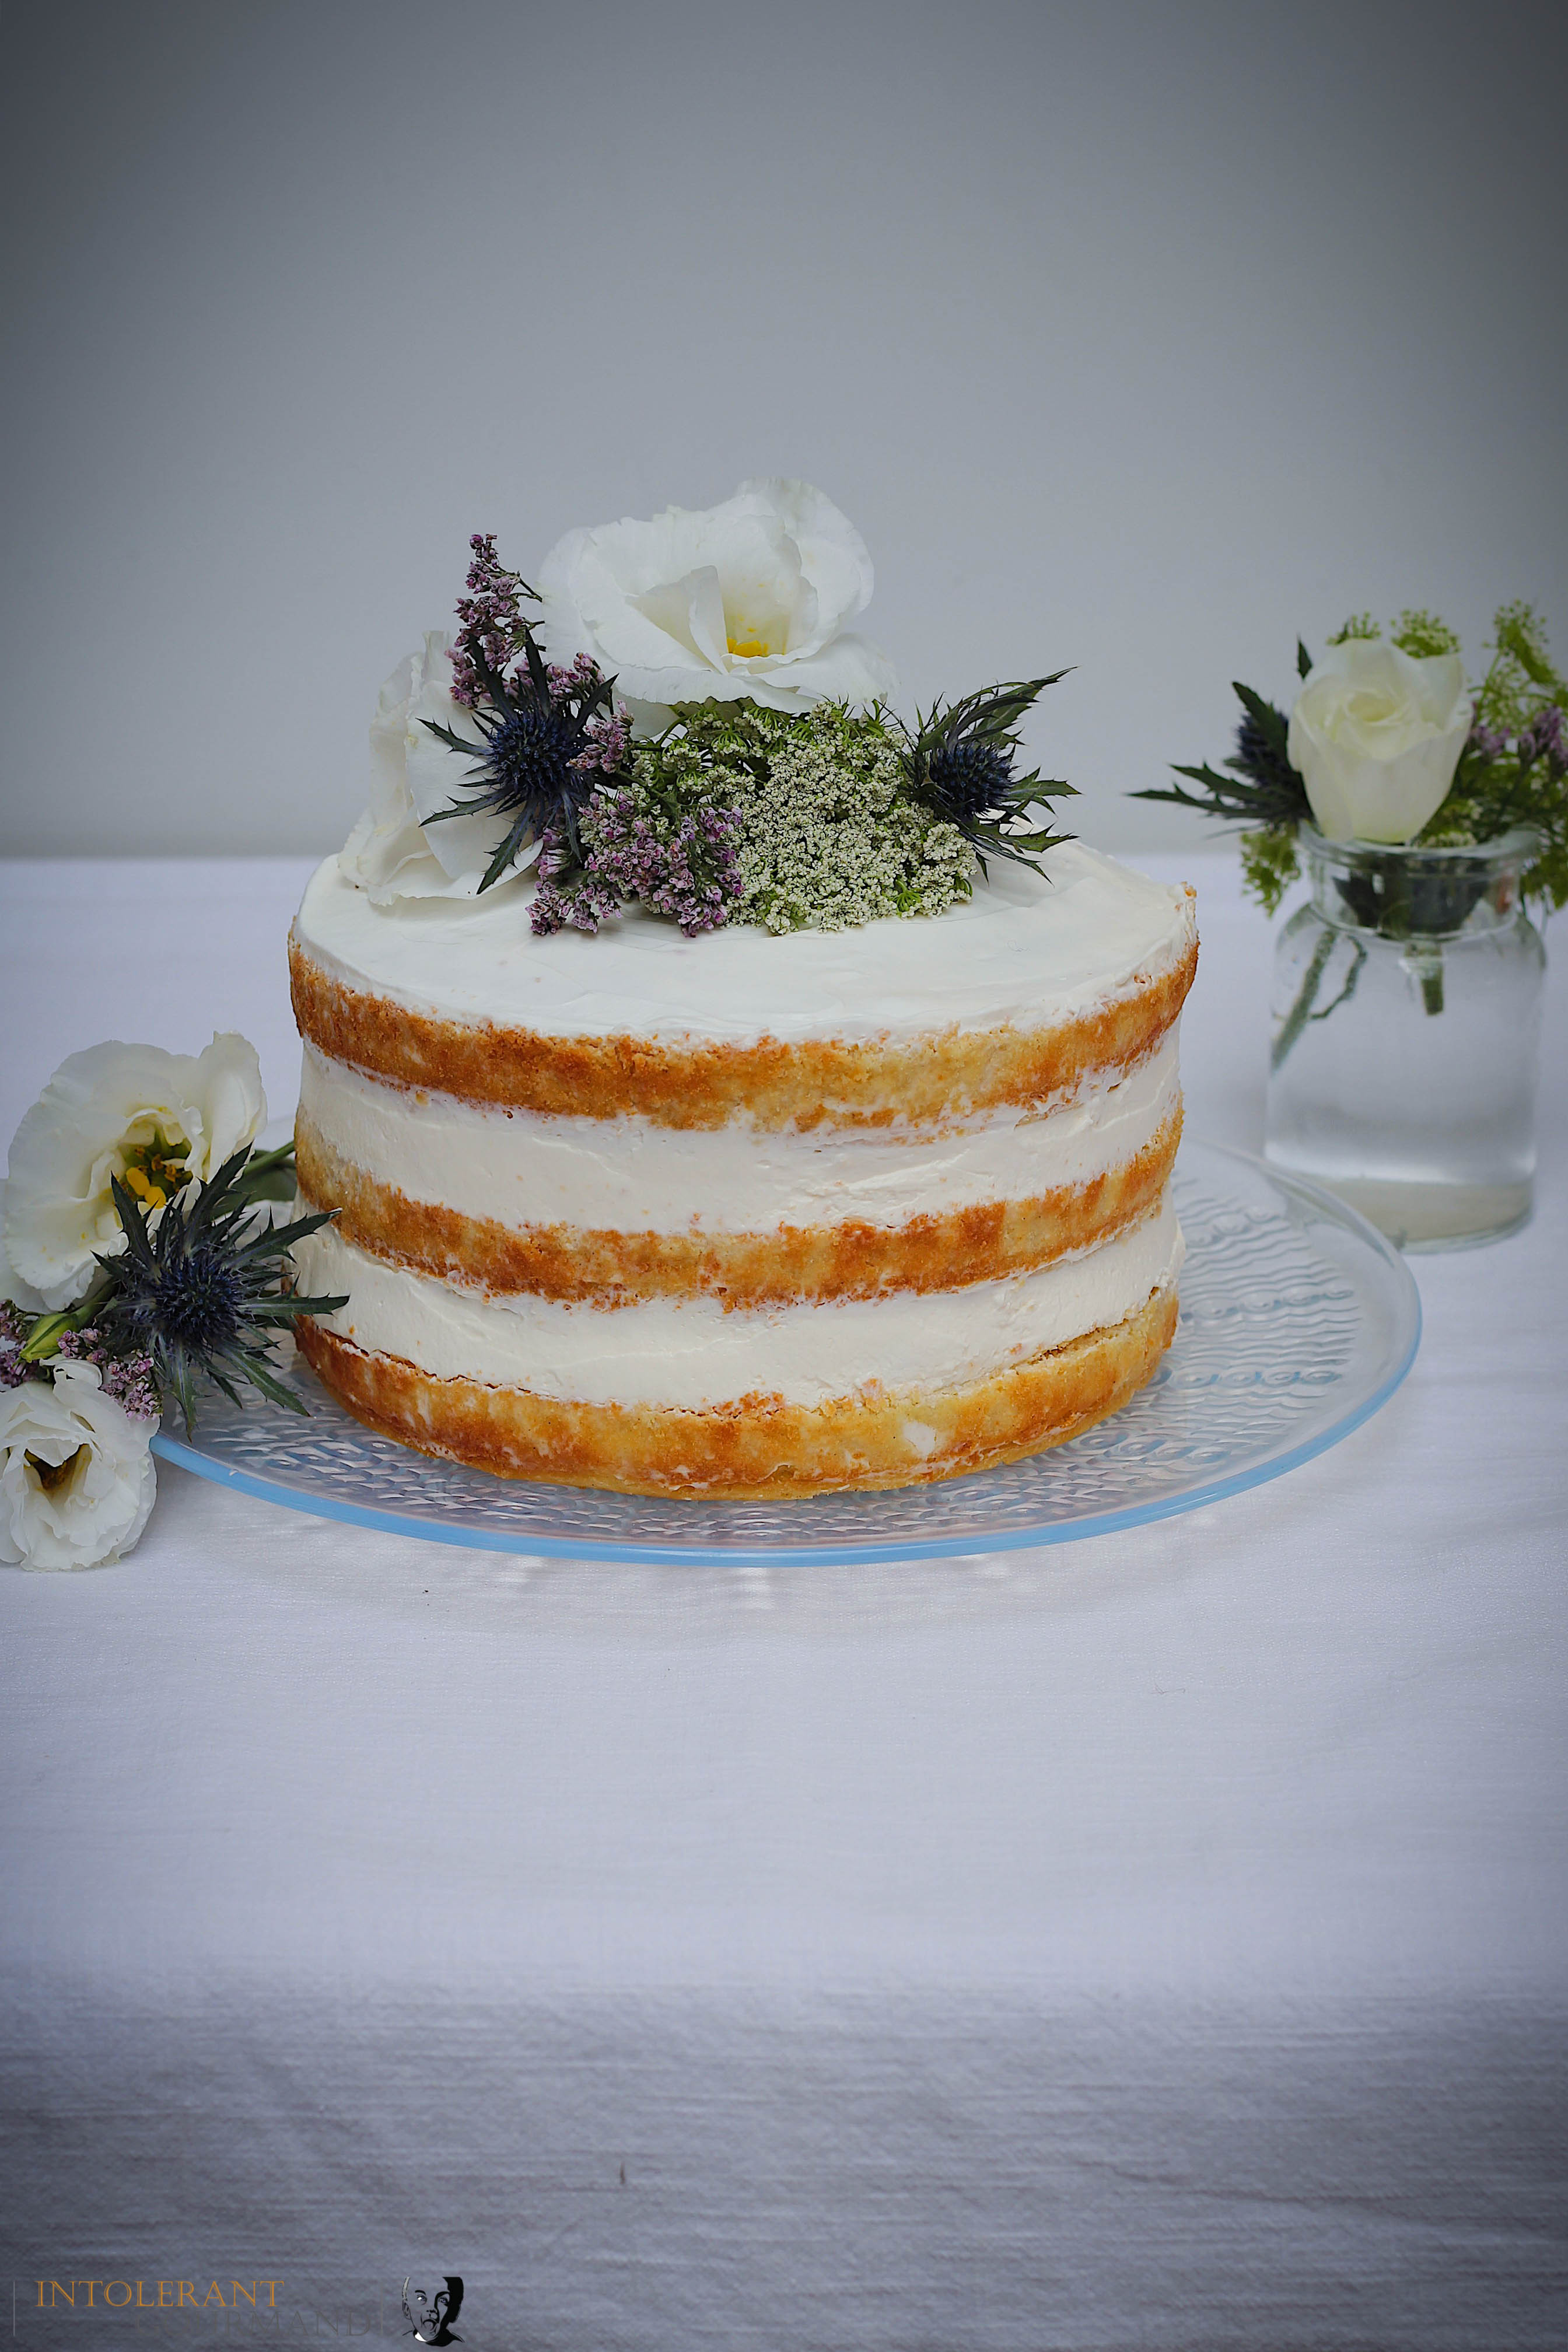 Royal Wedding Cake - Elderflower and lemon cake. A beautiful 3 tiered light and delicate sponge cake, that is gluten-free and dairy-free. Perfect for any celebration, or simply just because! www.intolerantgourmand.com